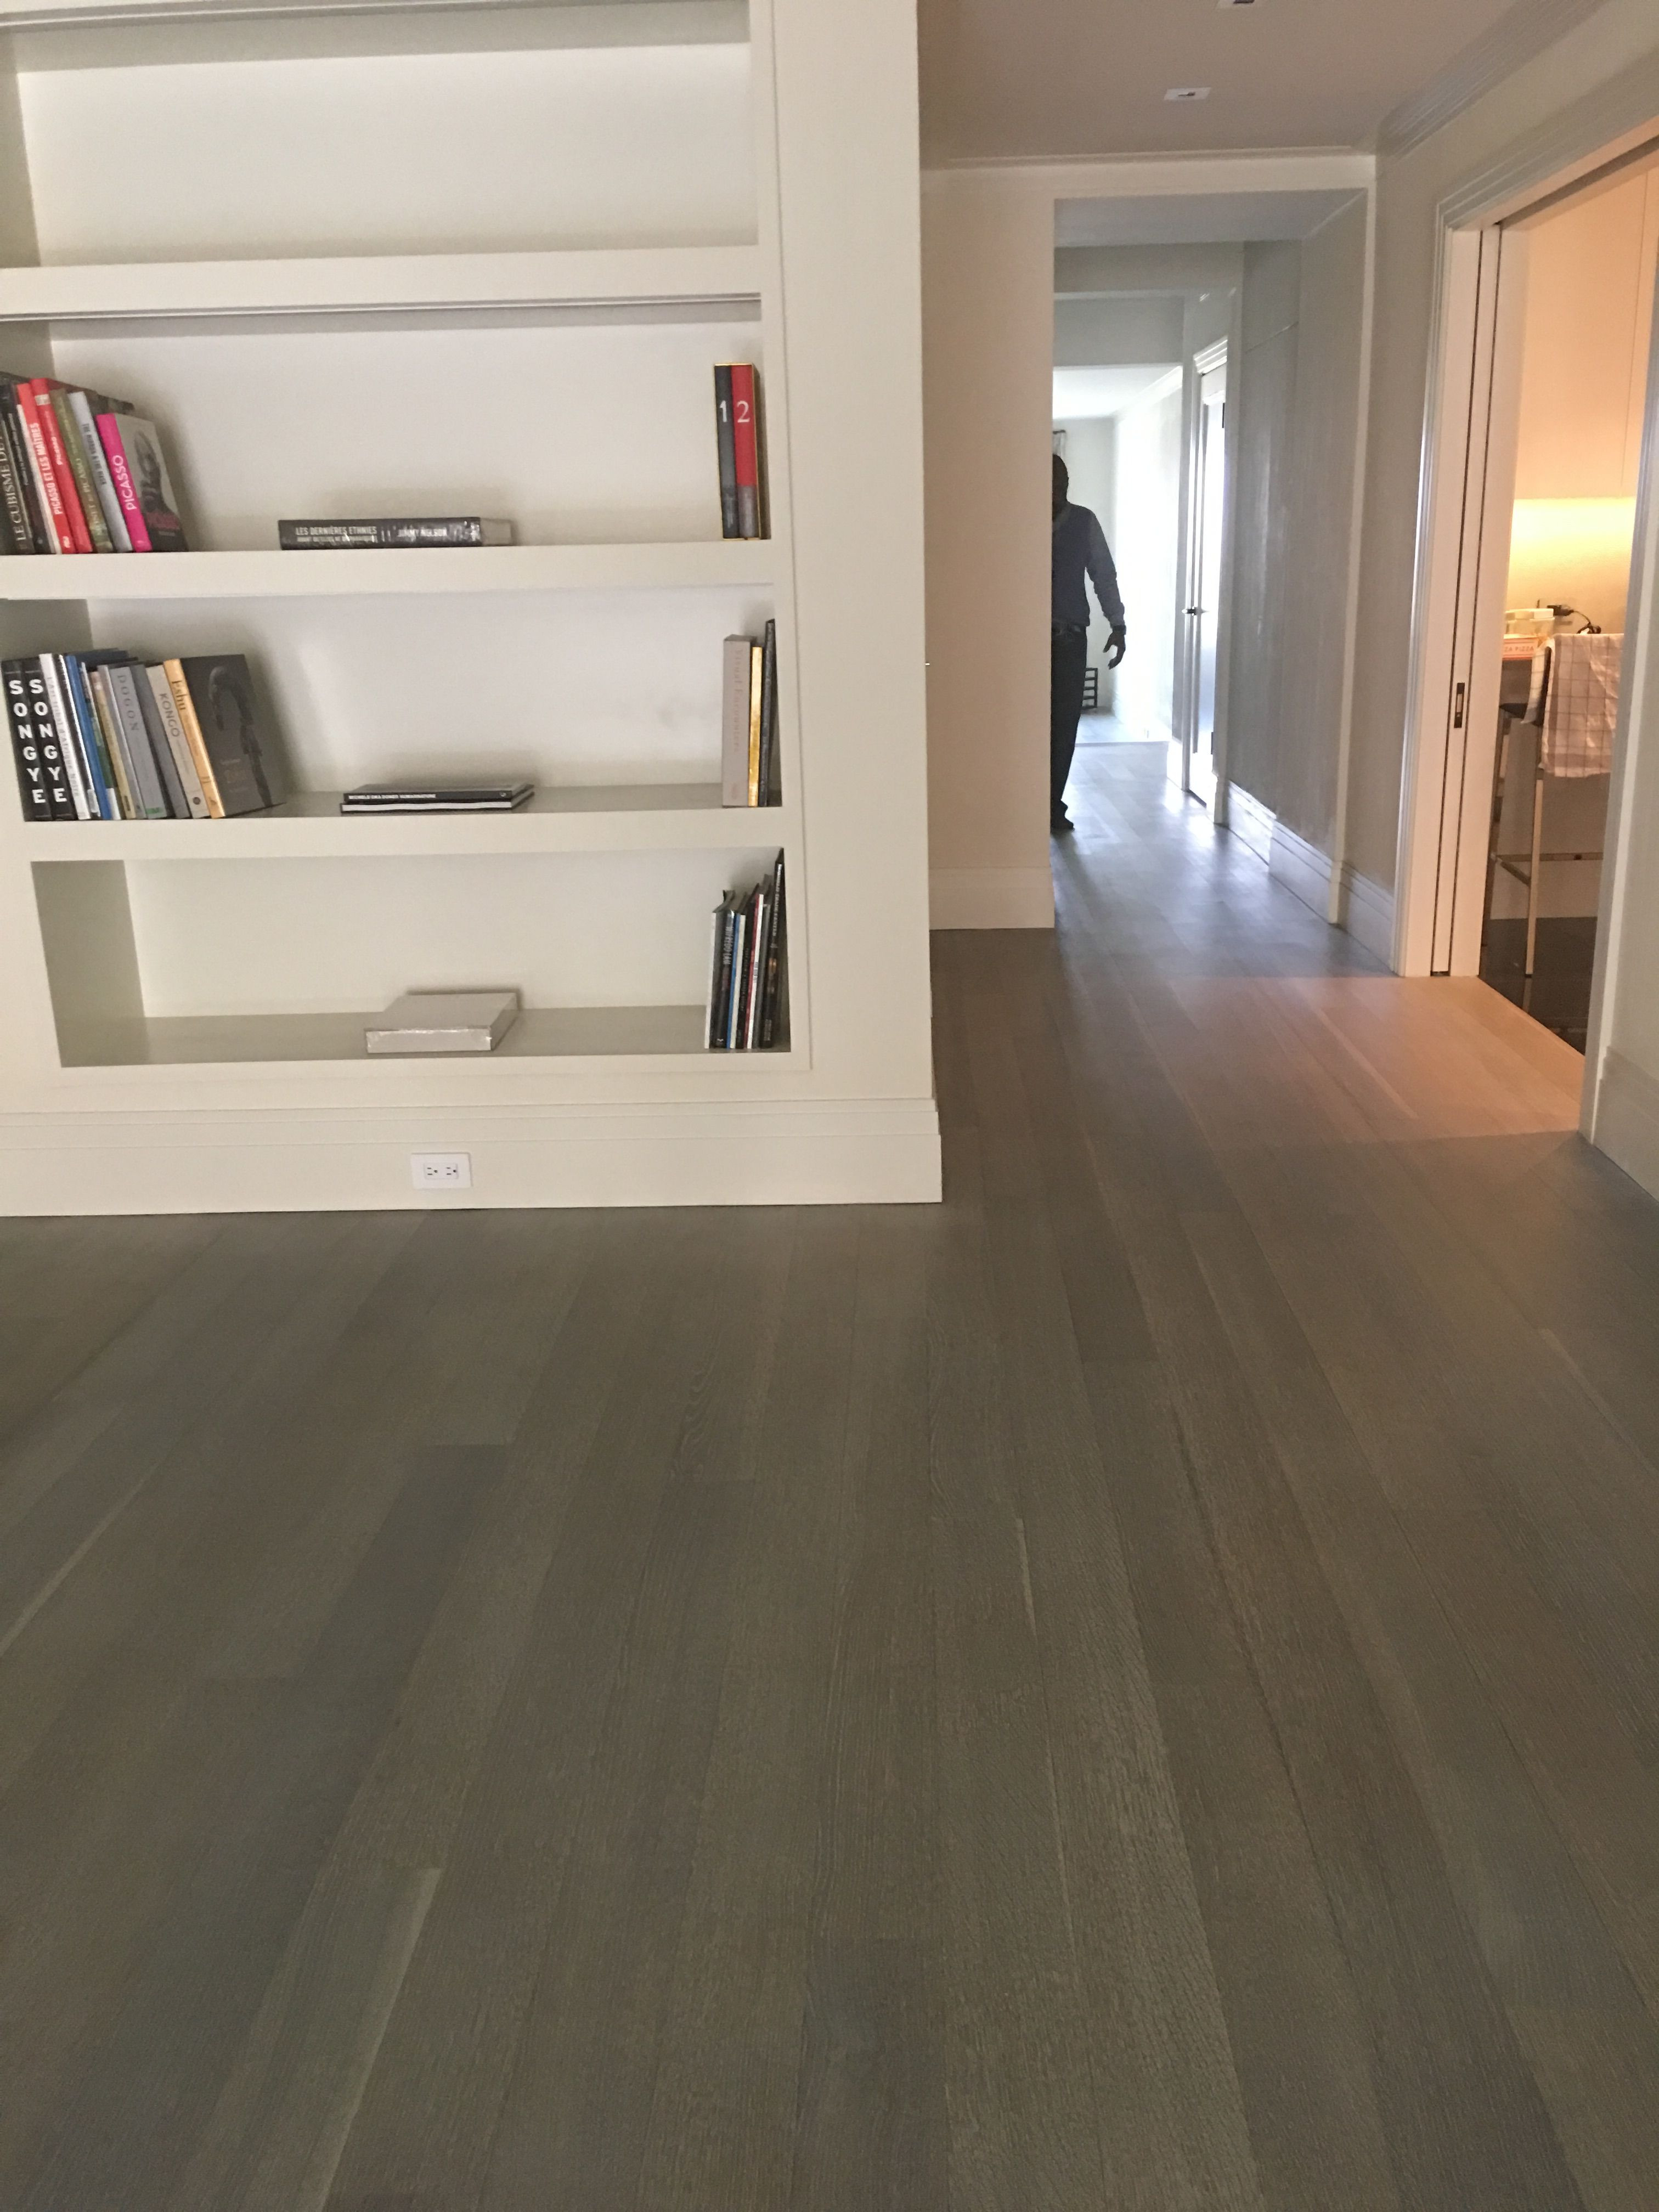 hardwood flooring hardness rating of there are many different types of hardwood flooring that you can throughout there are many different types of hardwood flooring that you can choose from aside from dozens of different species each with unique characteristics